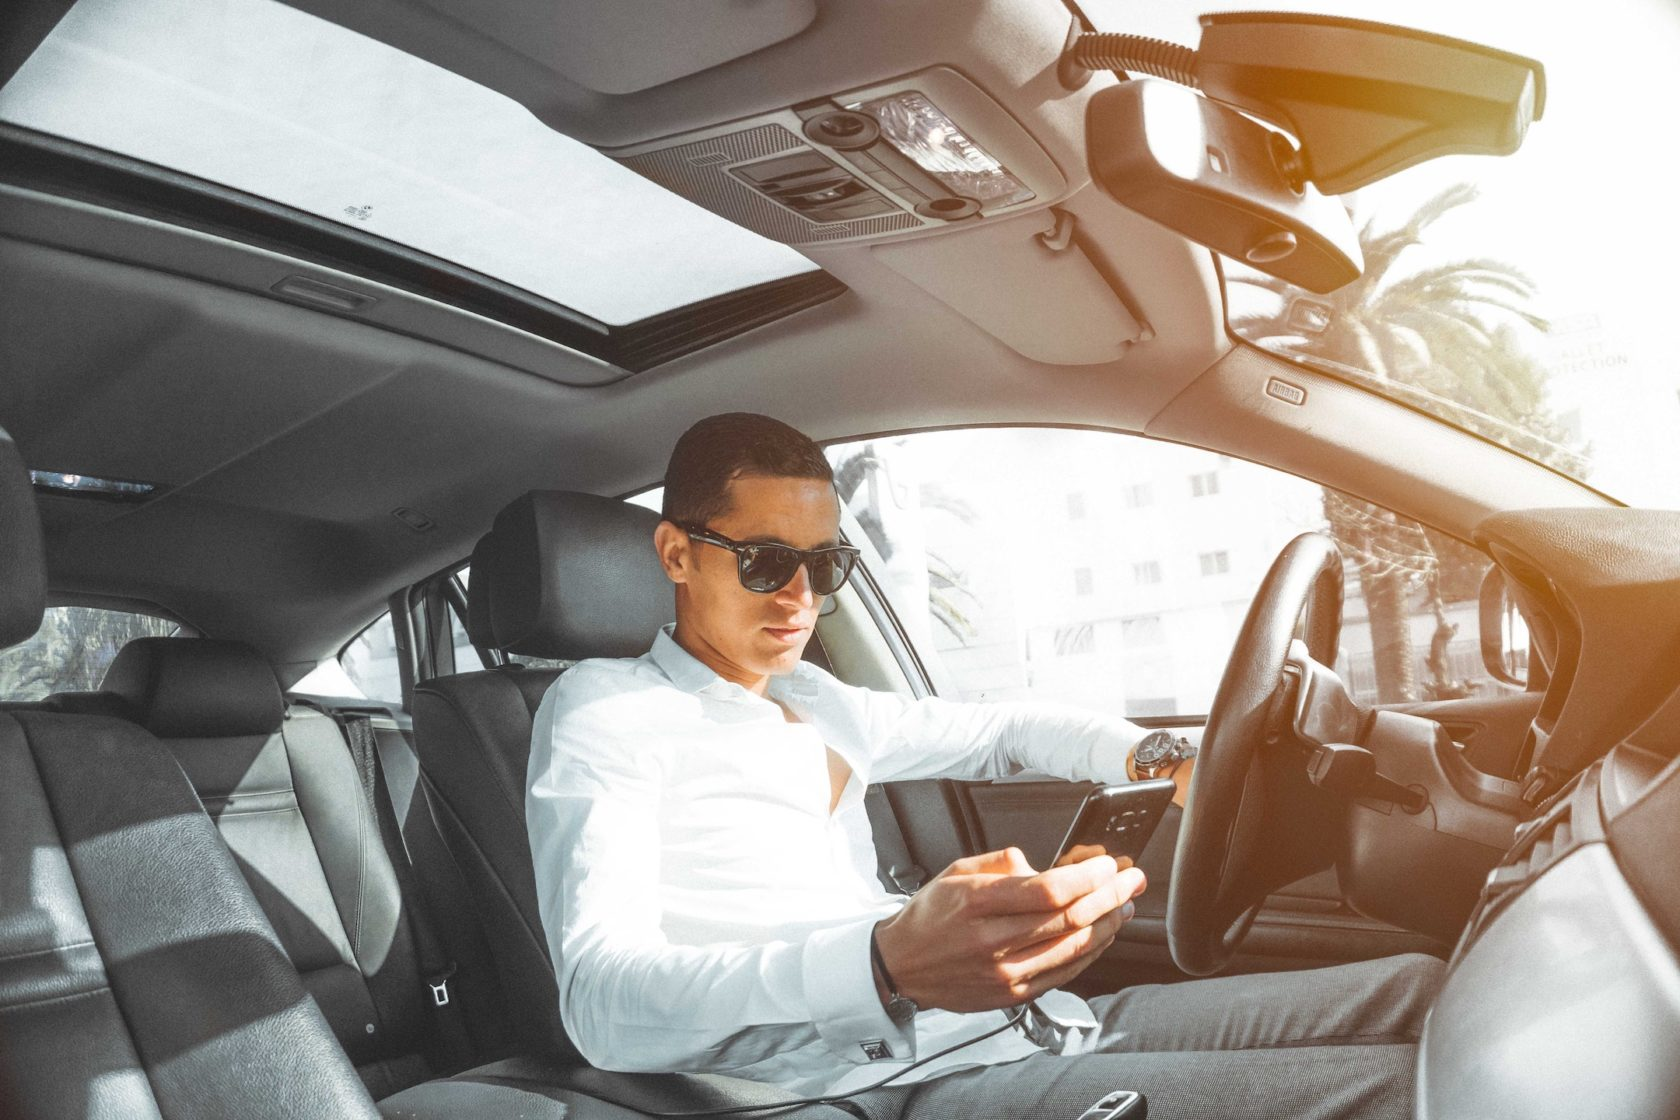 2018 snapshot: Distracted driving is 100x worse than thought